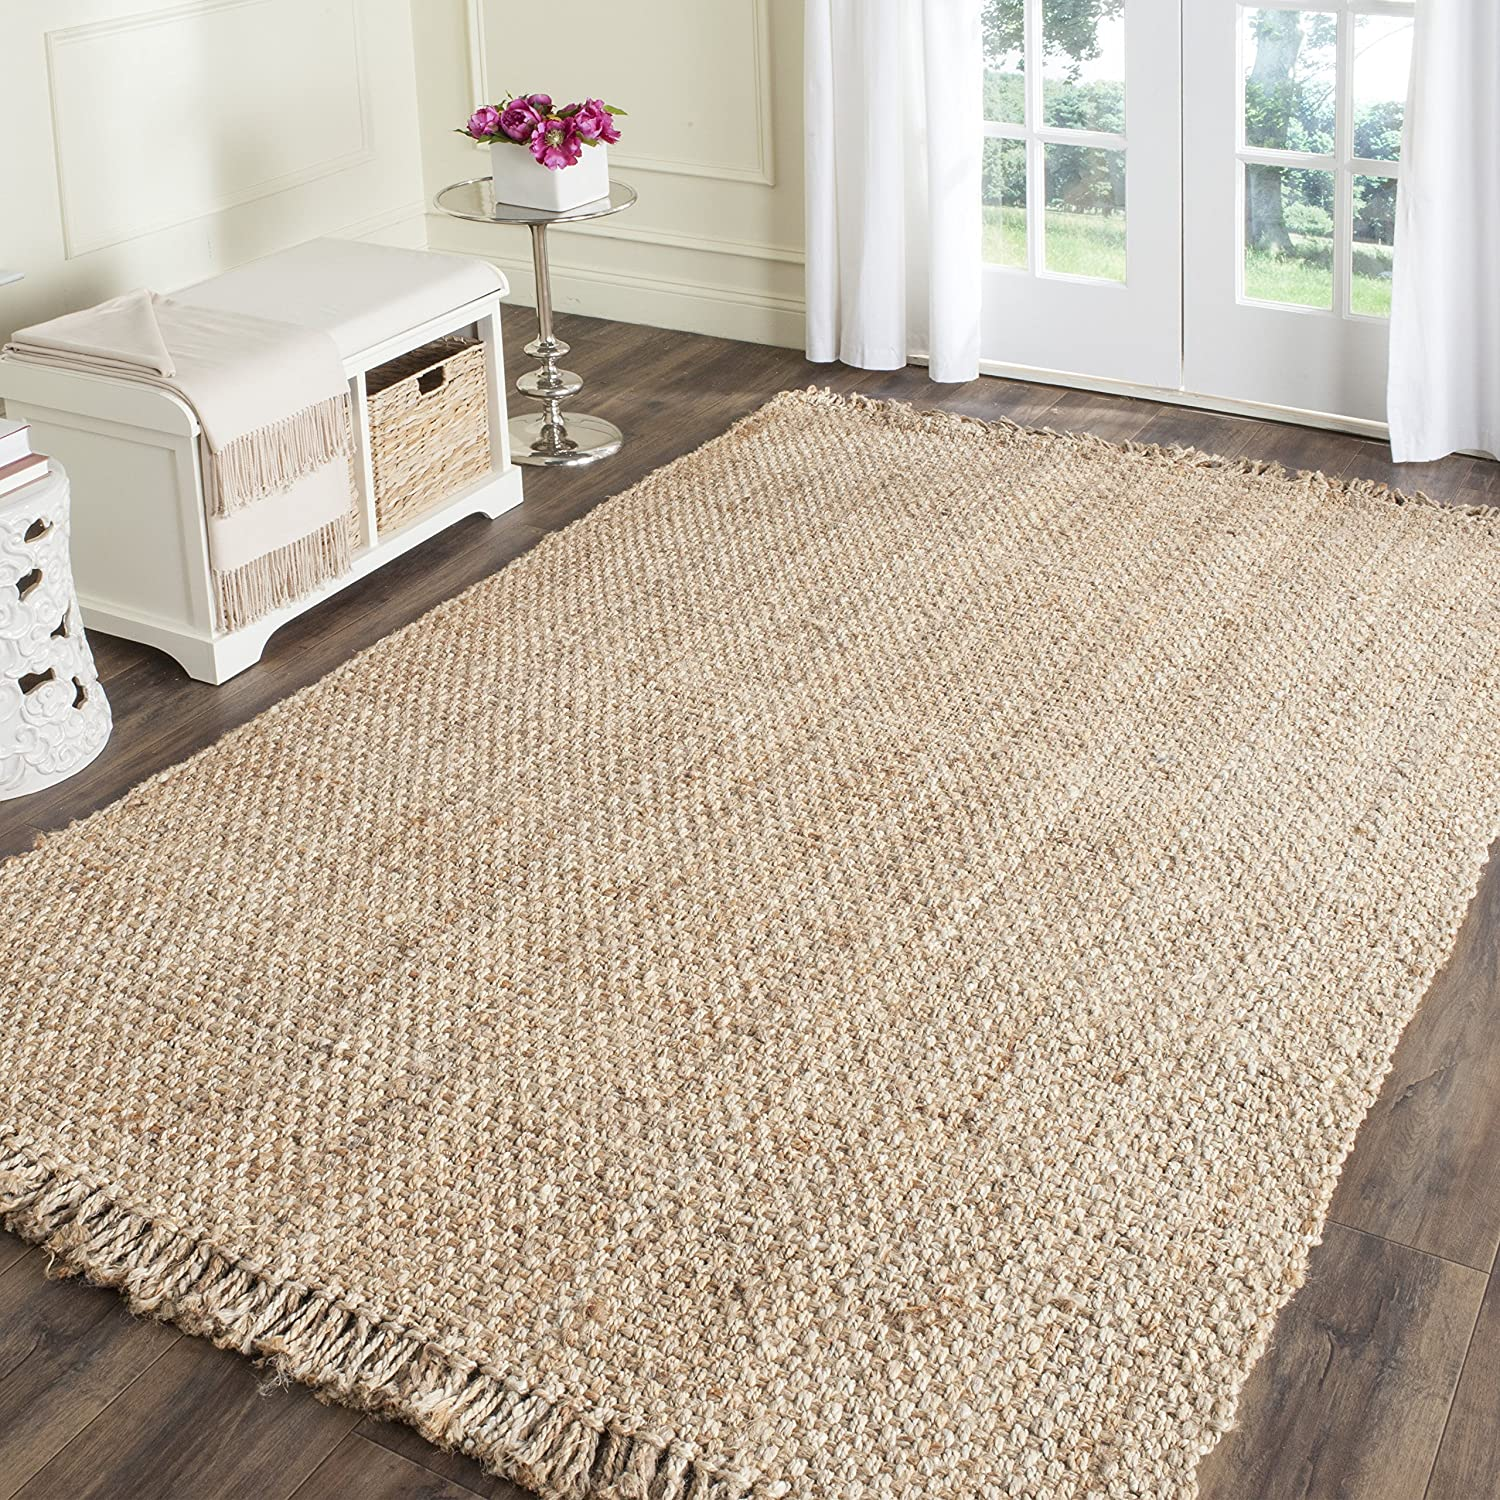 Amazon Com Safavieh Natural Fiber Collection Nf467a Hand Woven